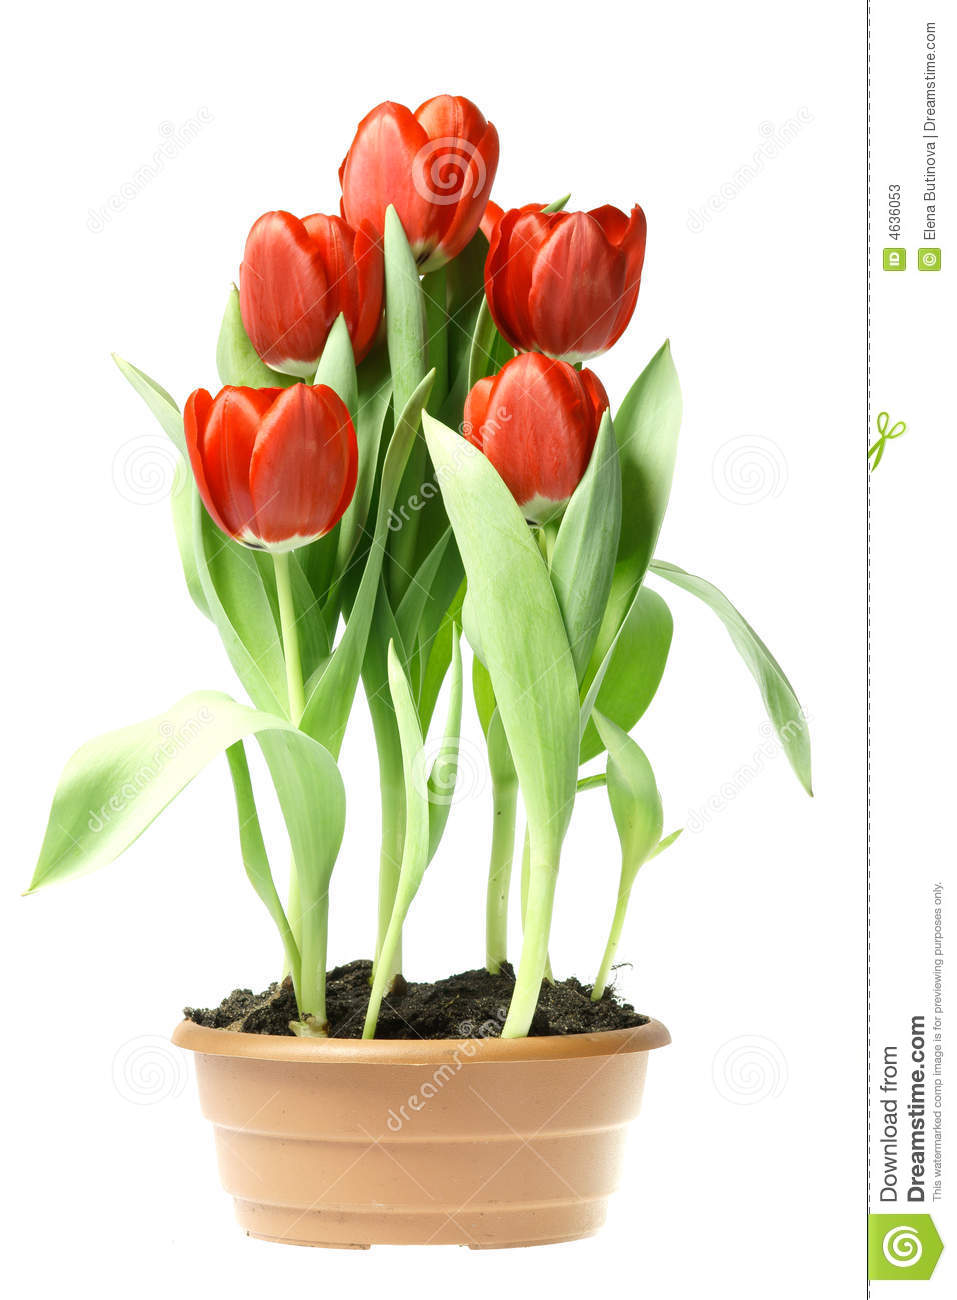 Red Tulips Stock Photos - Image: 4636053